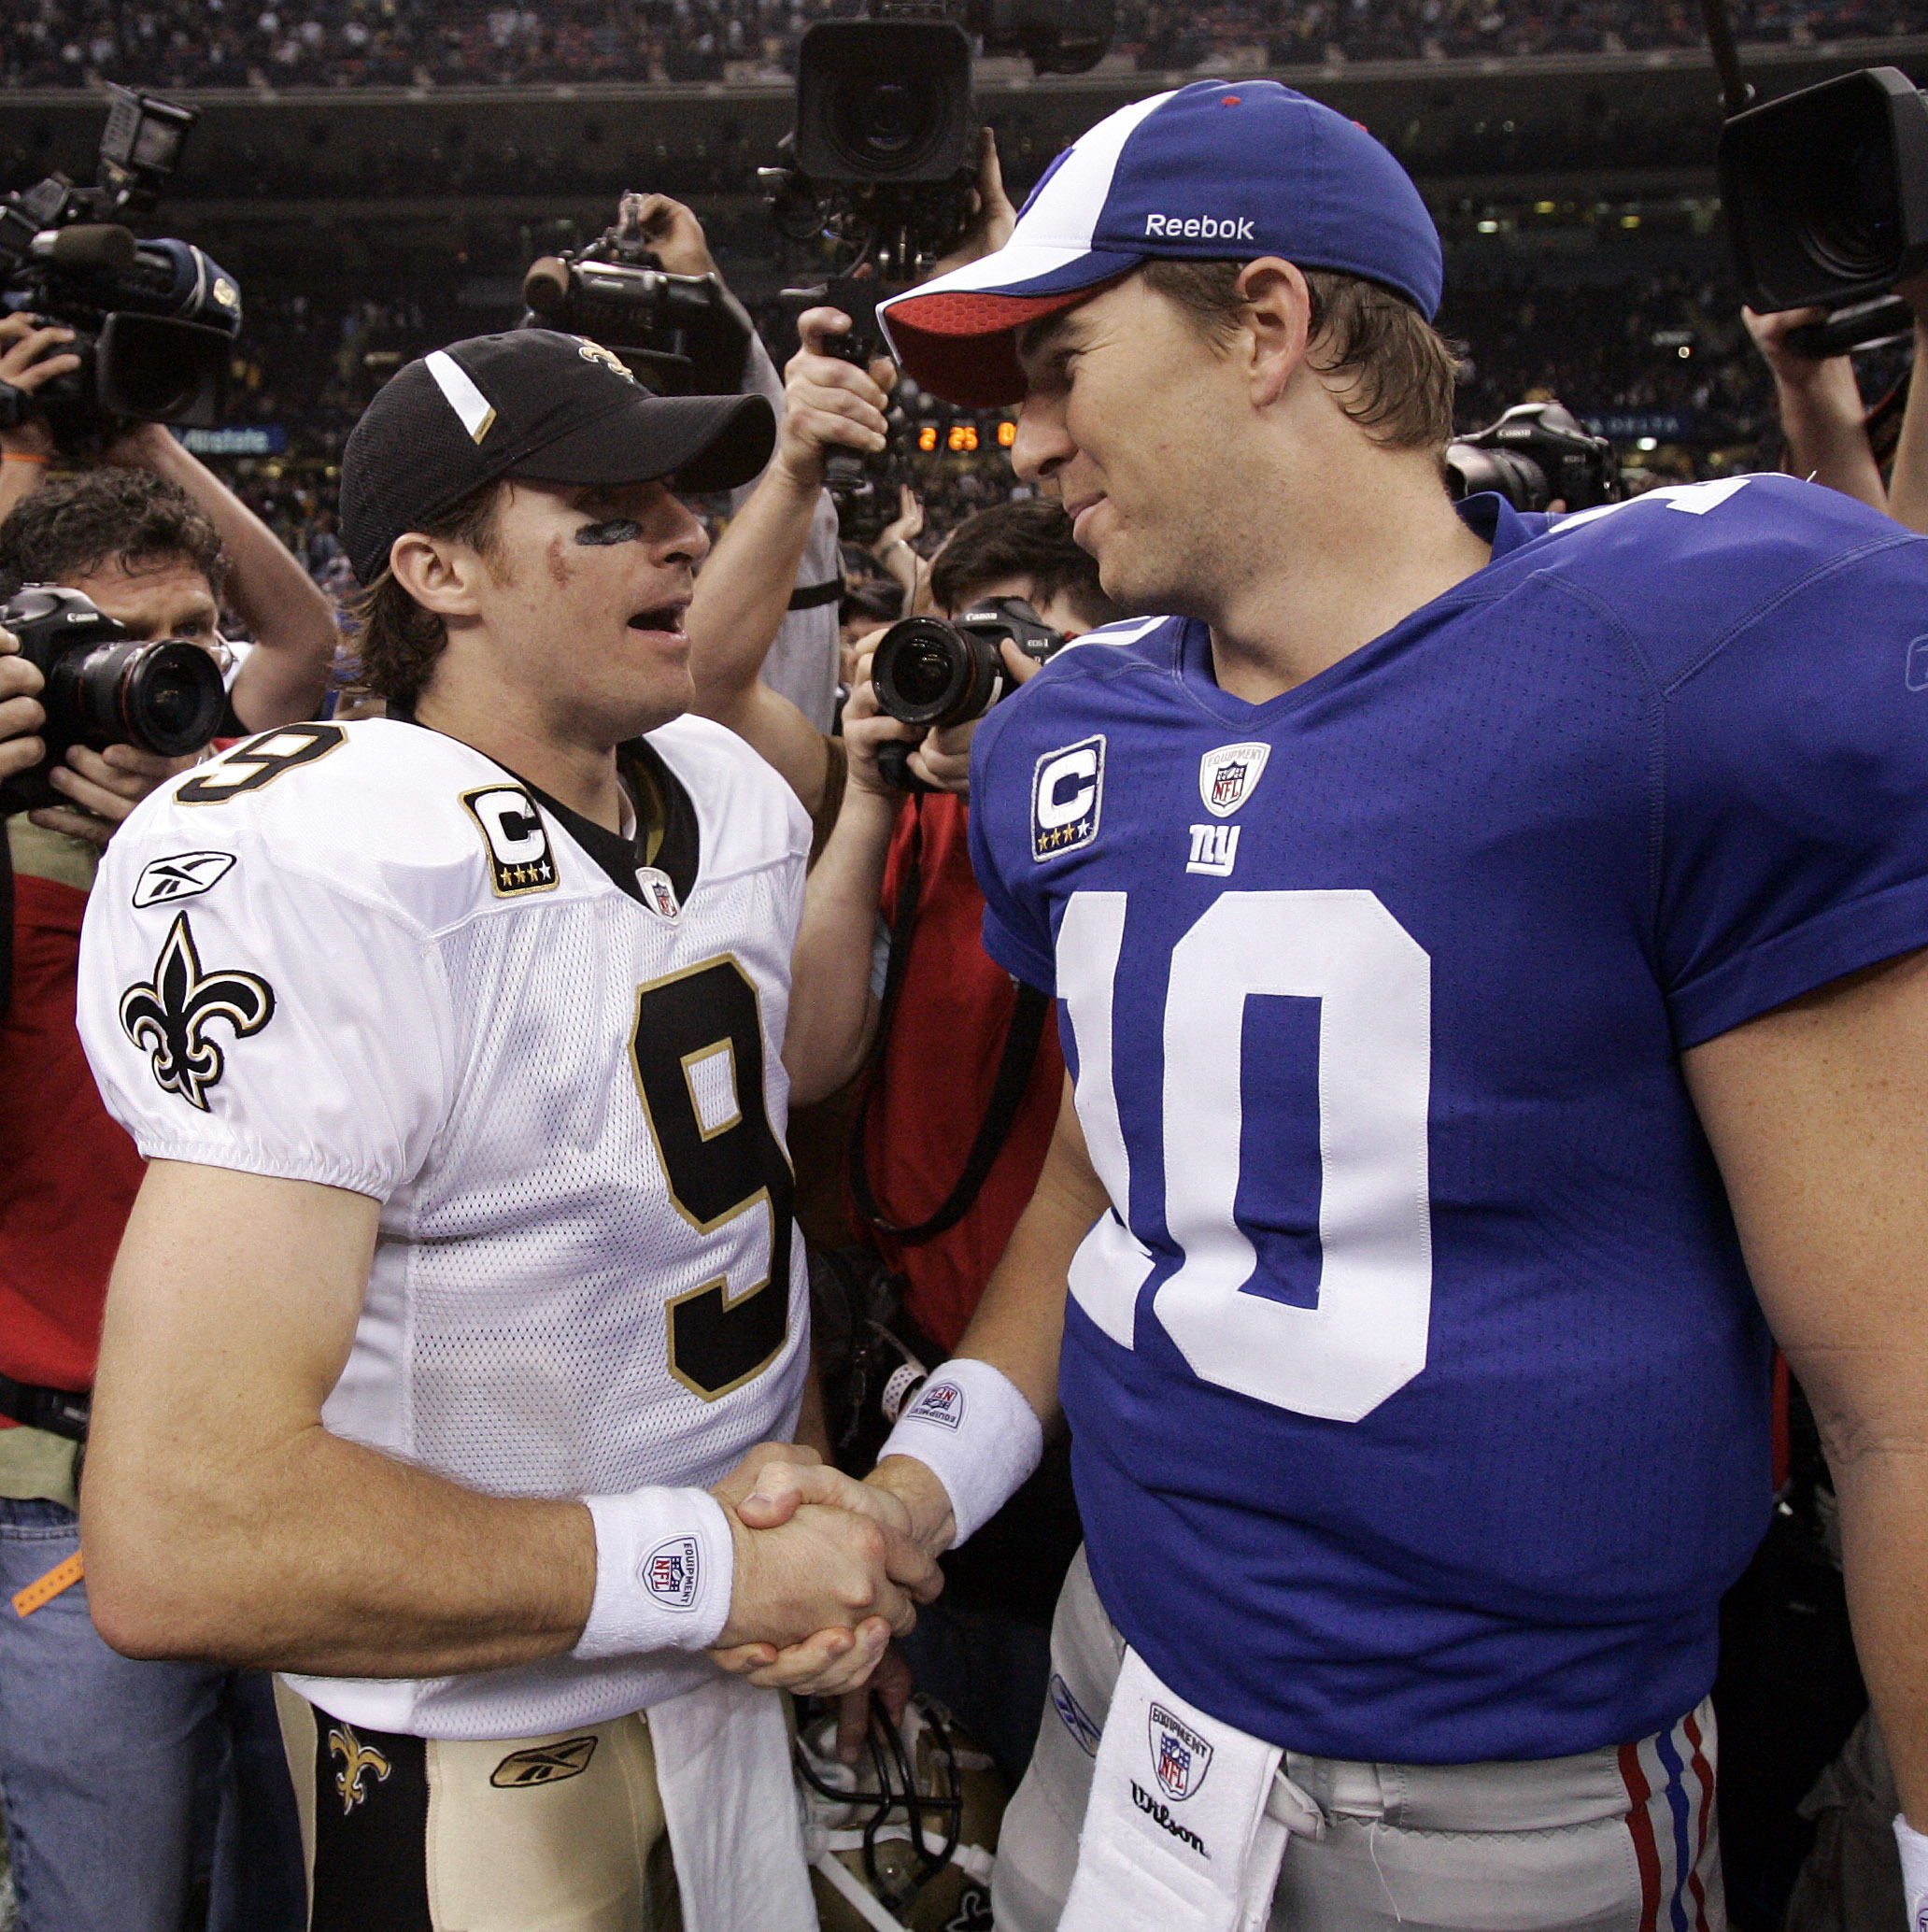 FILE - In this Oct. 18, 2009, file photo, New Orleans Saints quarterback Drew Brees (9) and New York Giants quarterback Eli Manning (10) shake hands after an NFL football game in New Orleans. Brees and Manning are friends off the field and rivals on the f